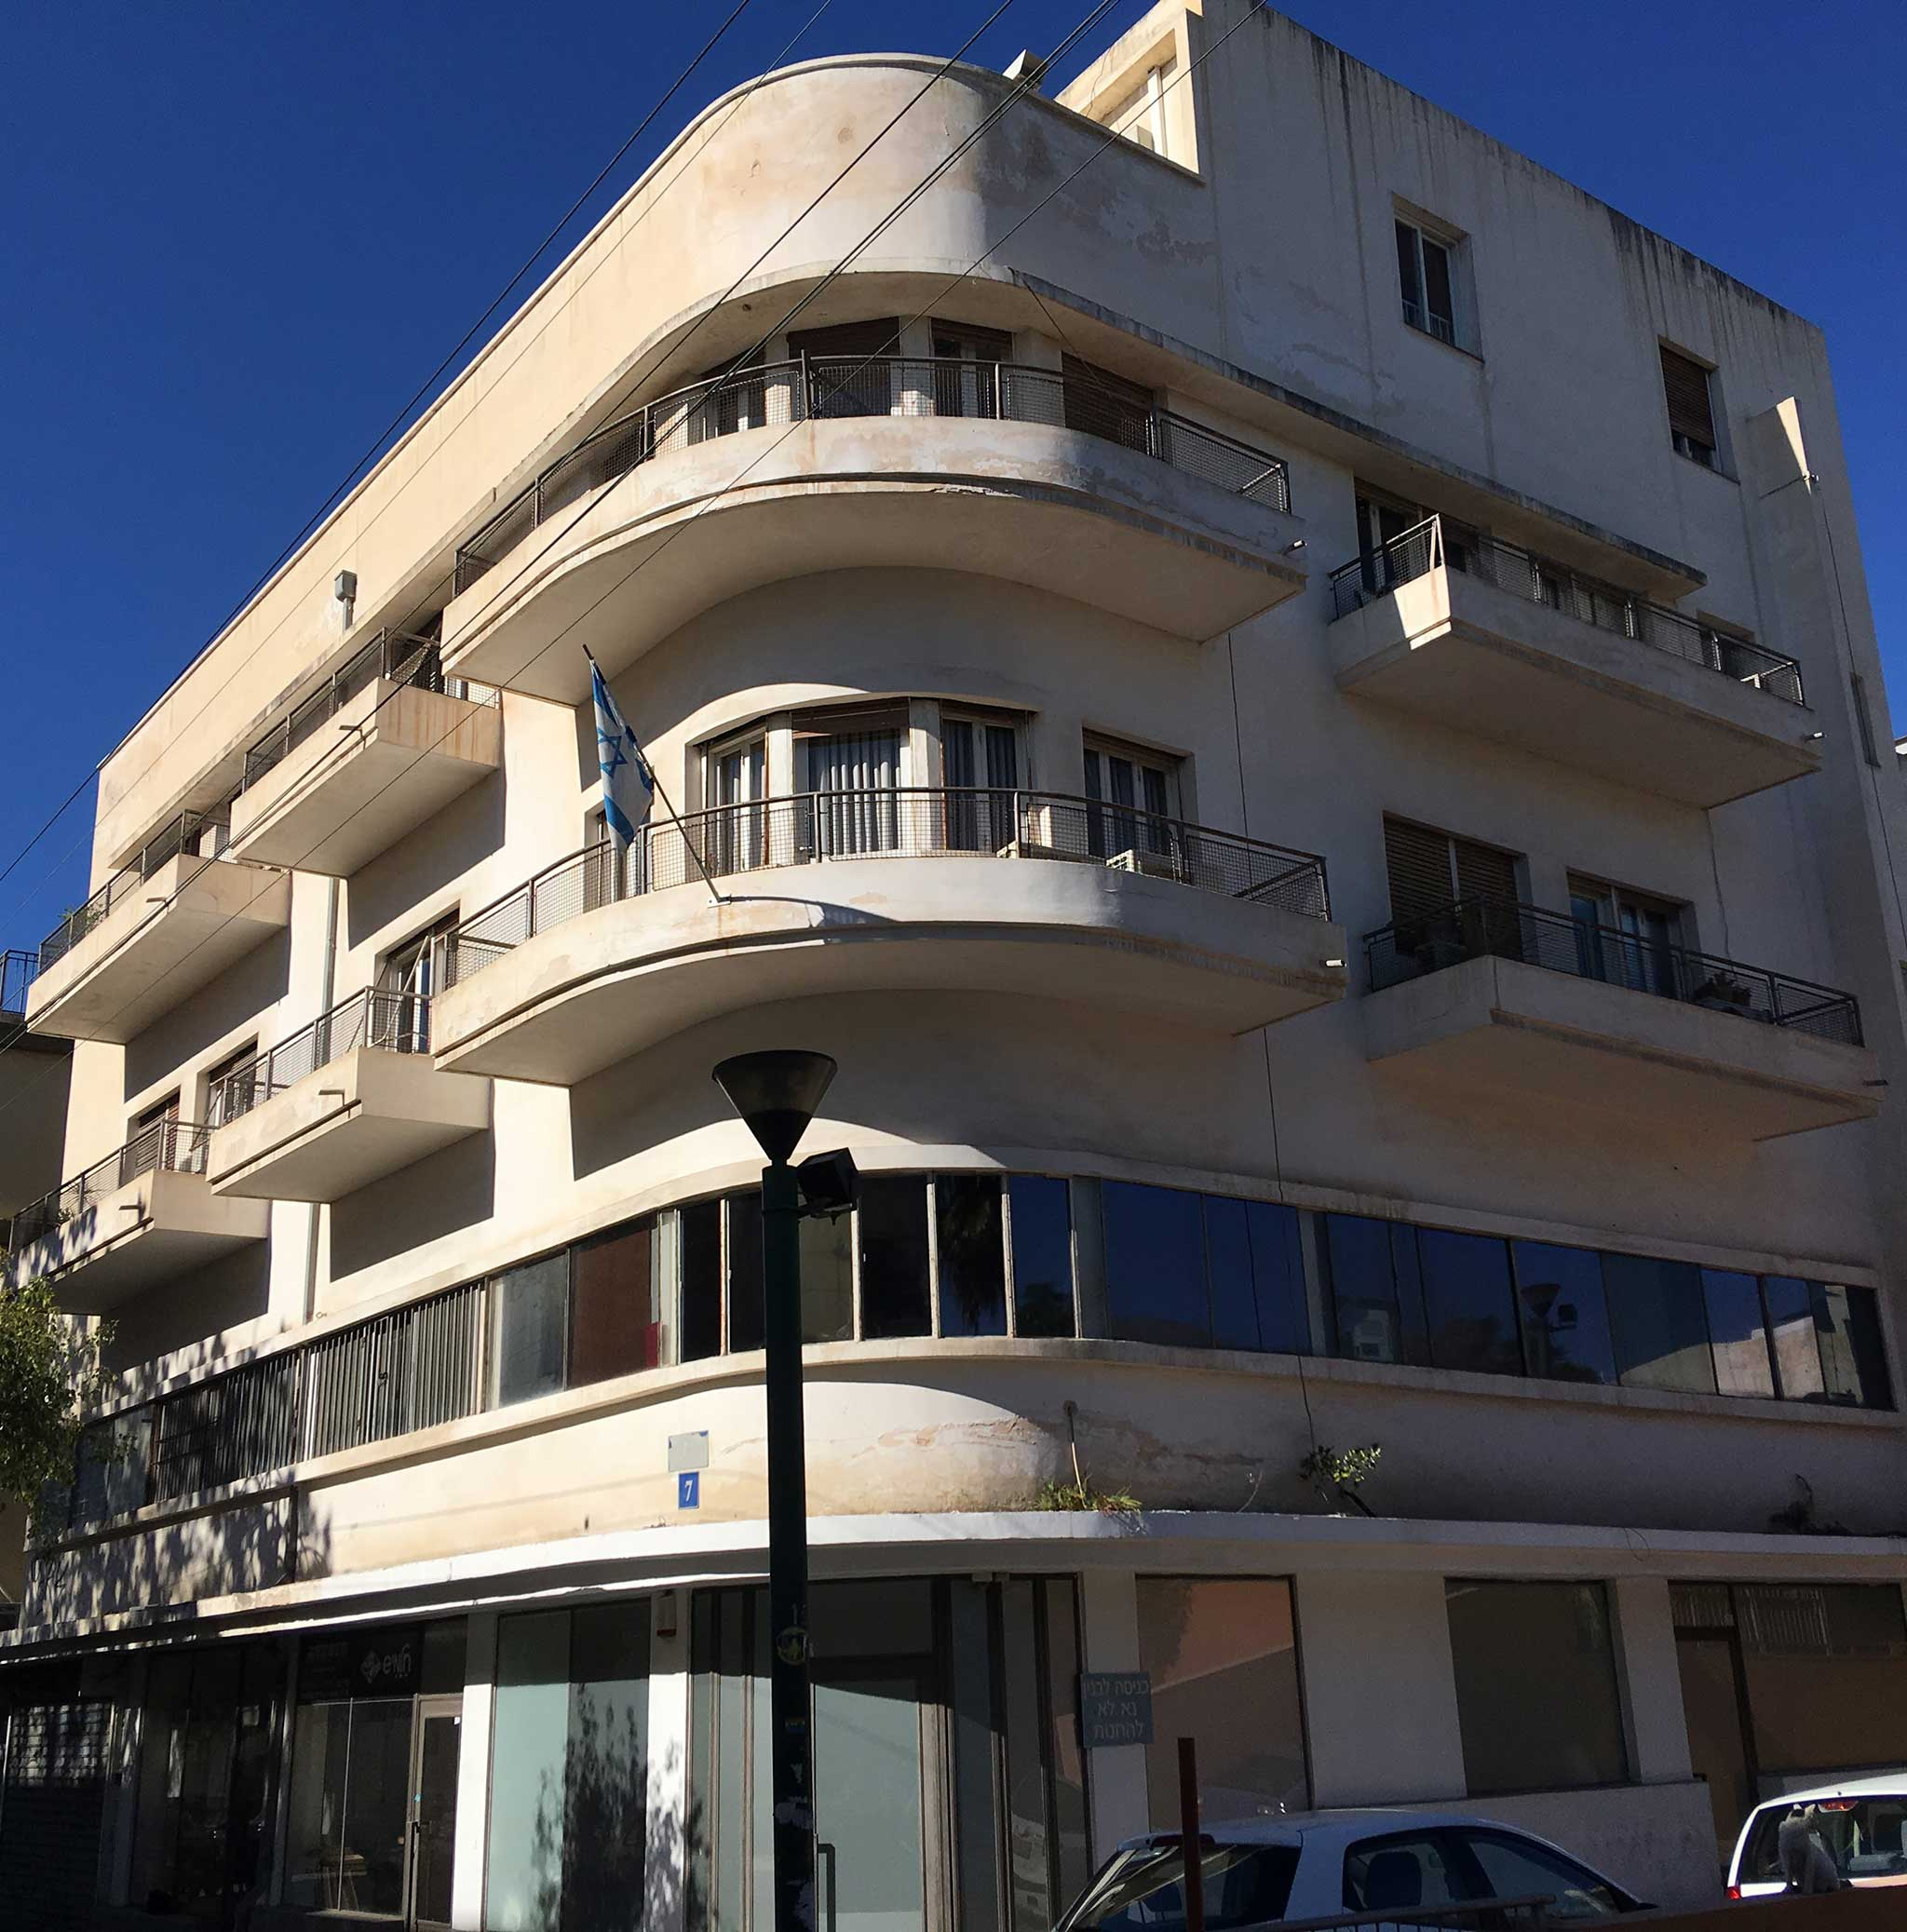 7 HaHashmal Street on Tel Aviv audio tour The Electrifying Story of Gan HaHashmal and Its Architecture